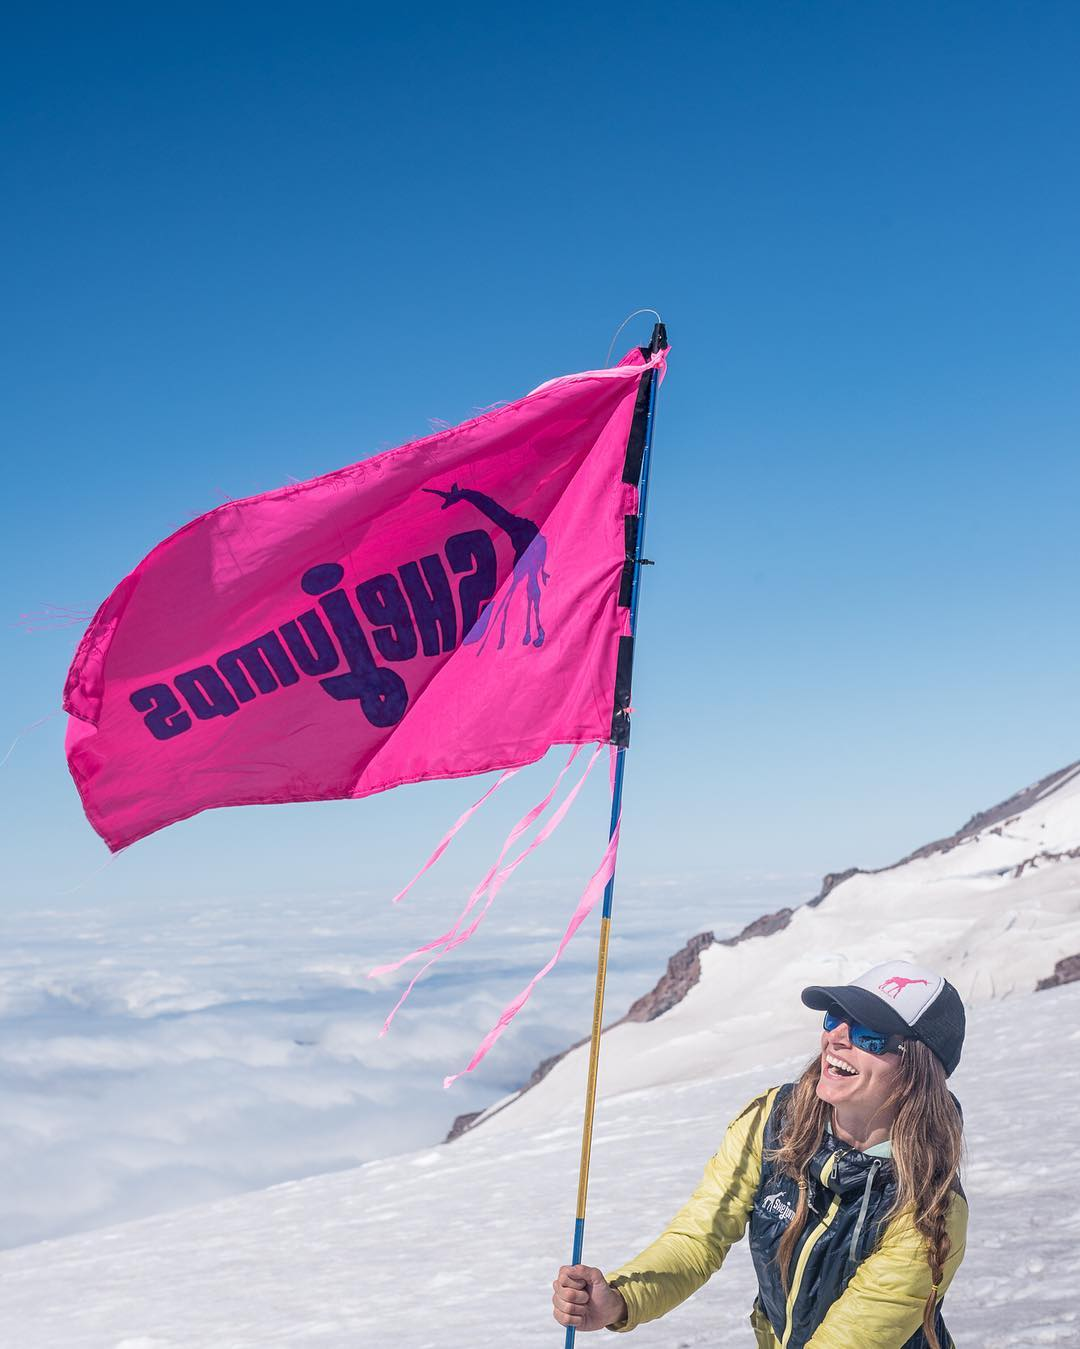 Rainier Climb Series 3/5: Of all the amazing images and stories we could tell you about our time on Rainier, we'd have nothing to talk about if this brave Girafficorn incarnate had not decided to take a jump with us a few years ago. @christy_pelland is...